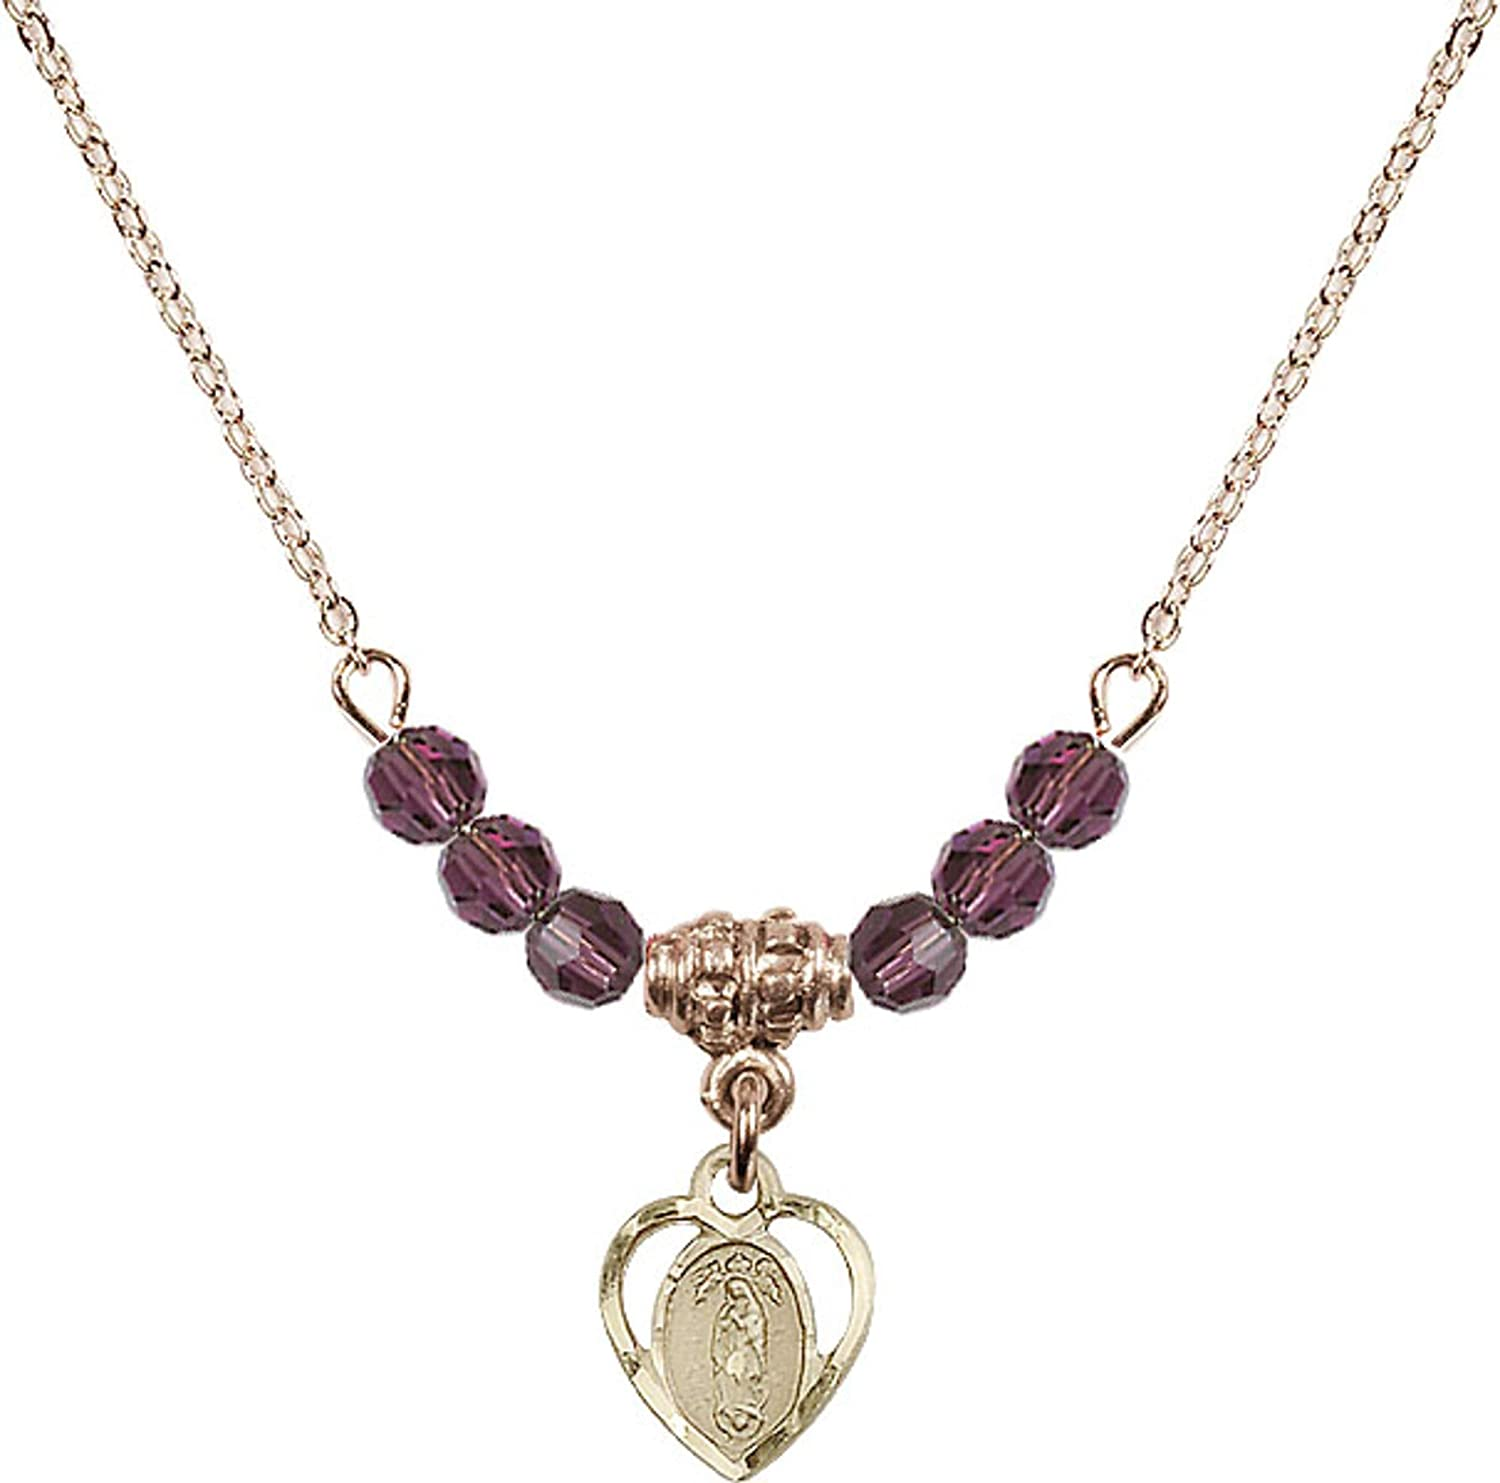 Bonyak Jewelry 18 Inch Hamilton Gold Plated Necklace w// 4mm Purple February Birth Month Stone Beads and Our Lady of Guadalupe Charm